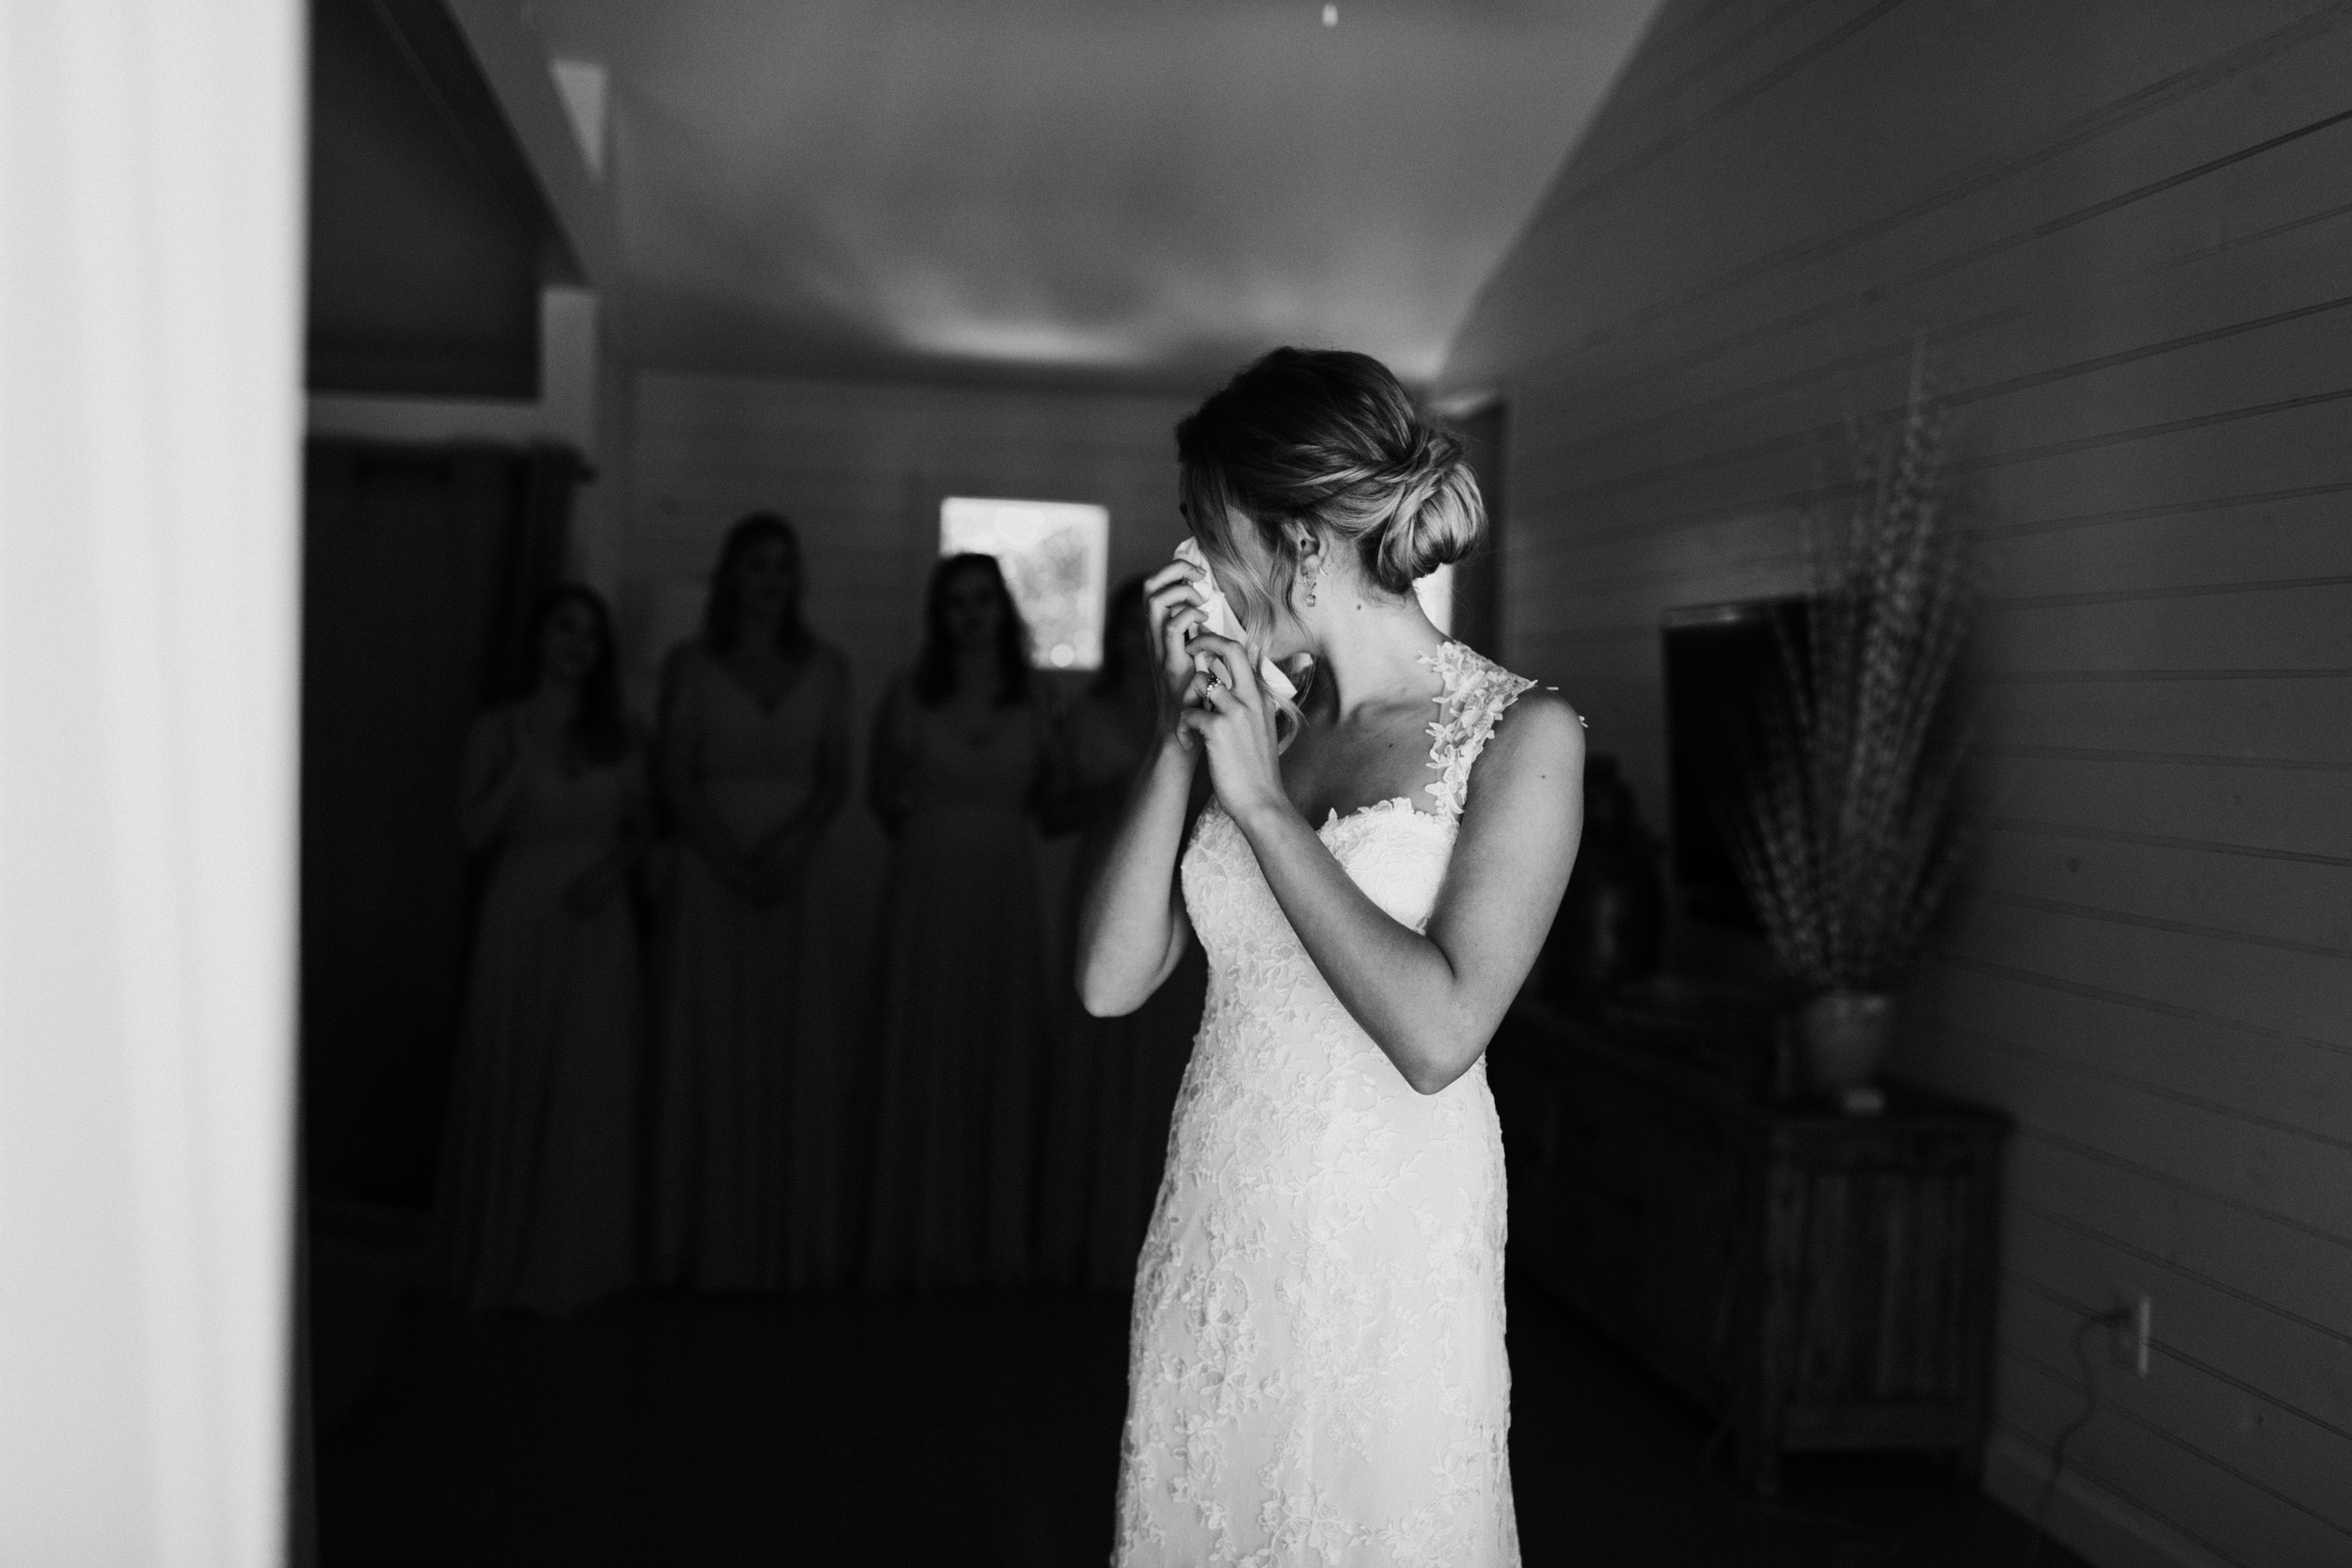 cailin+hails_destination_wedding_fairhope_daphne_mobile_alabama_madisonrylee_0044.jpg